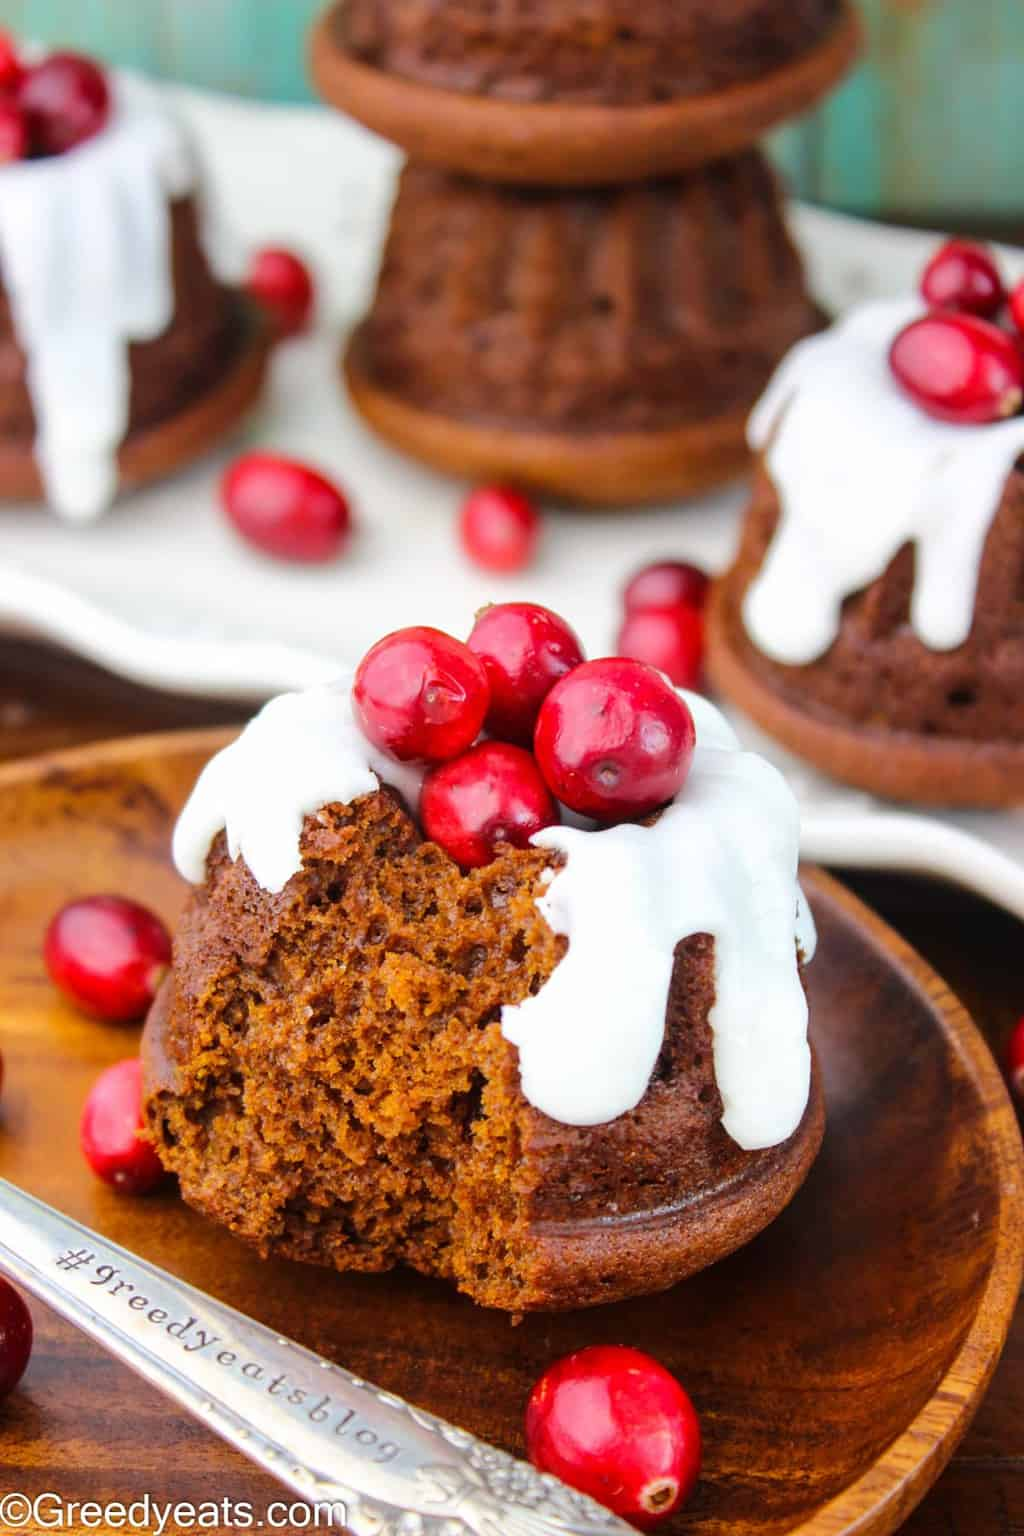 Warm and fluffy, moist and perfectly spiced, this Gingerbread bundt cake recipe will be your favorite Holiday Dessert!